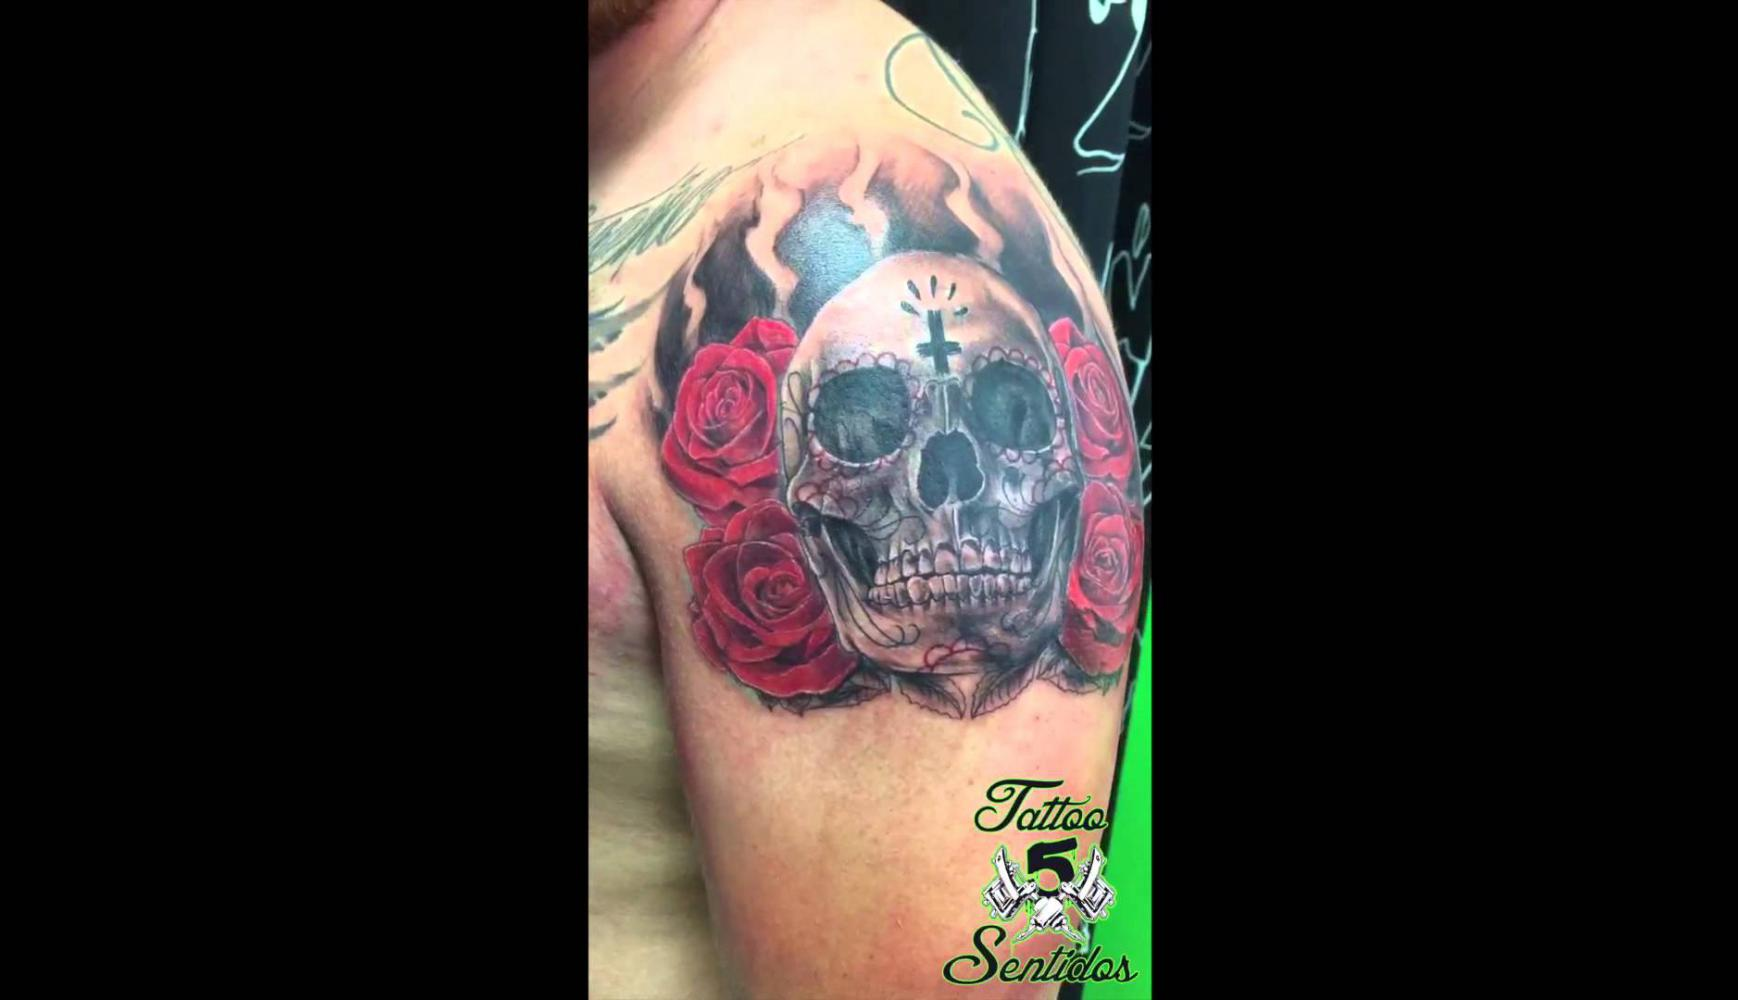 Embedded thumbnail for TATTOO CALAVERA ROSAS - LOS 5 SENTIDOS TATTOO BENIDORM